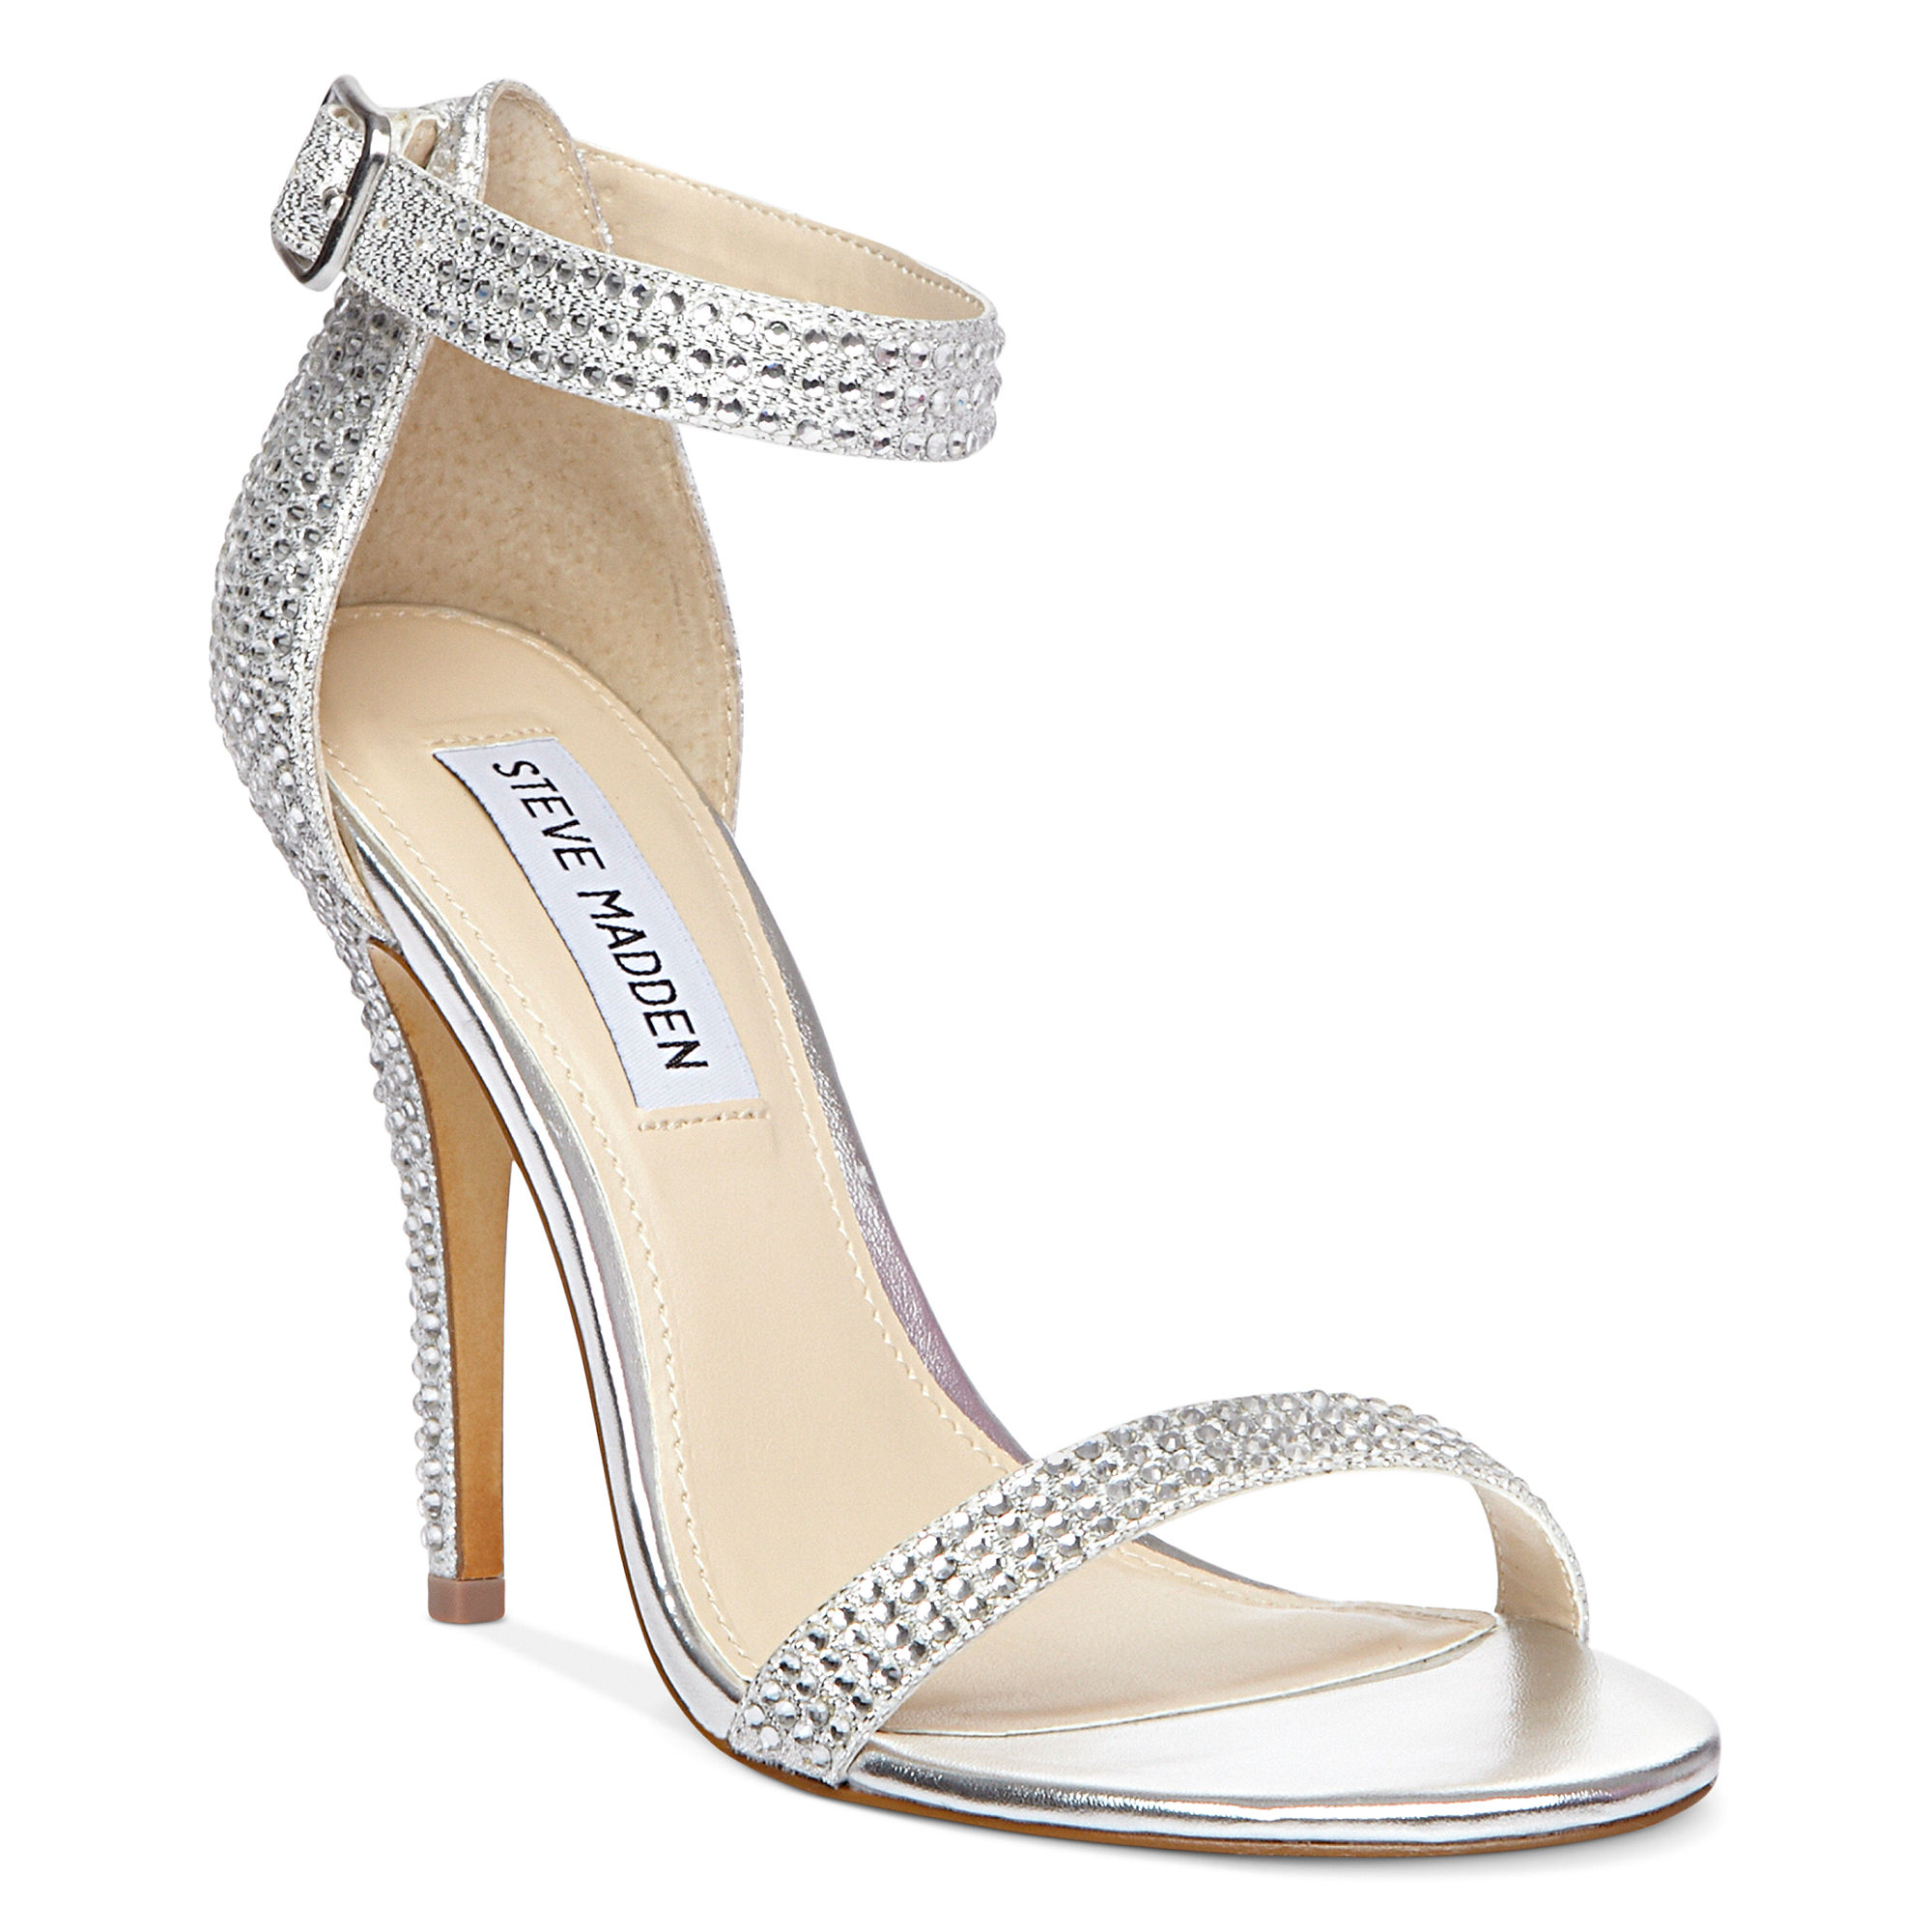 52a3ef16686 Lyst - Steve Madden Real Love R Evening Sandals